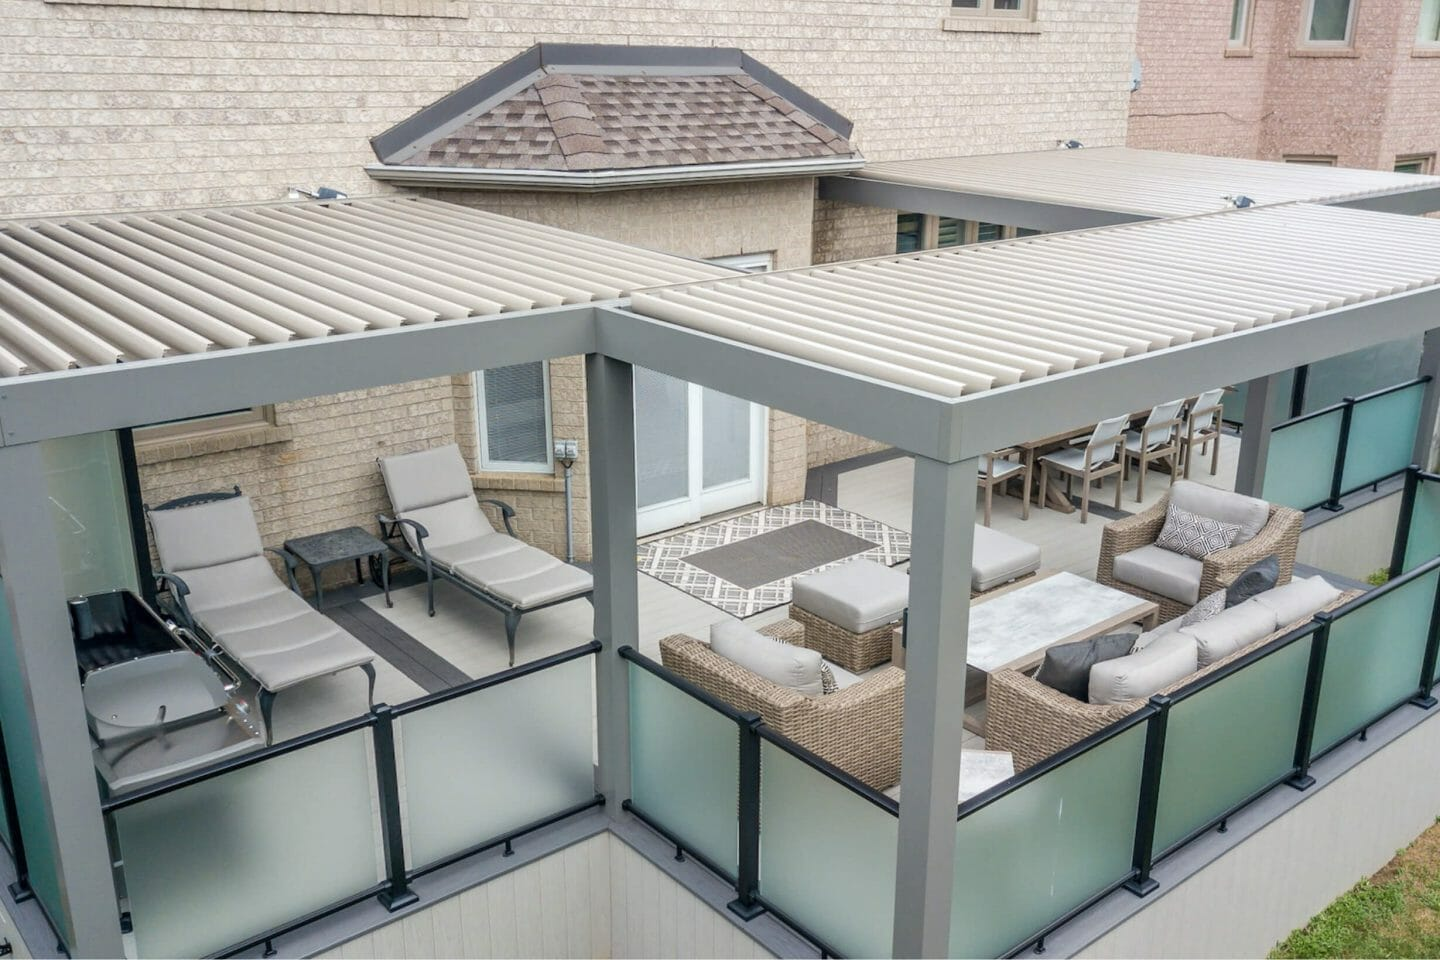 Looking down on three beige and gray patio structures with low green glass partitions